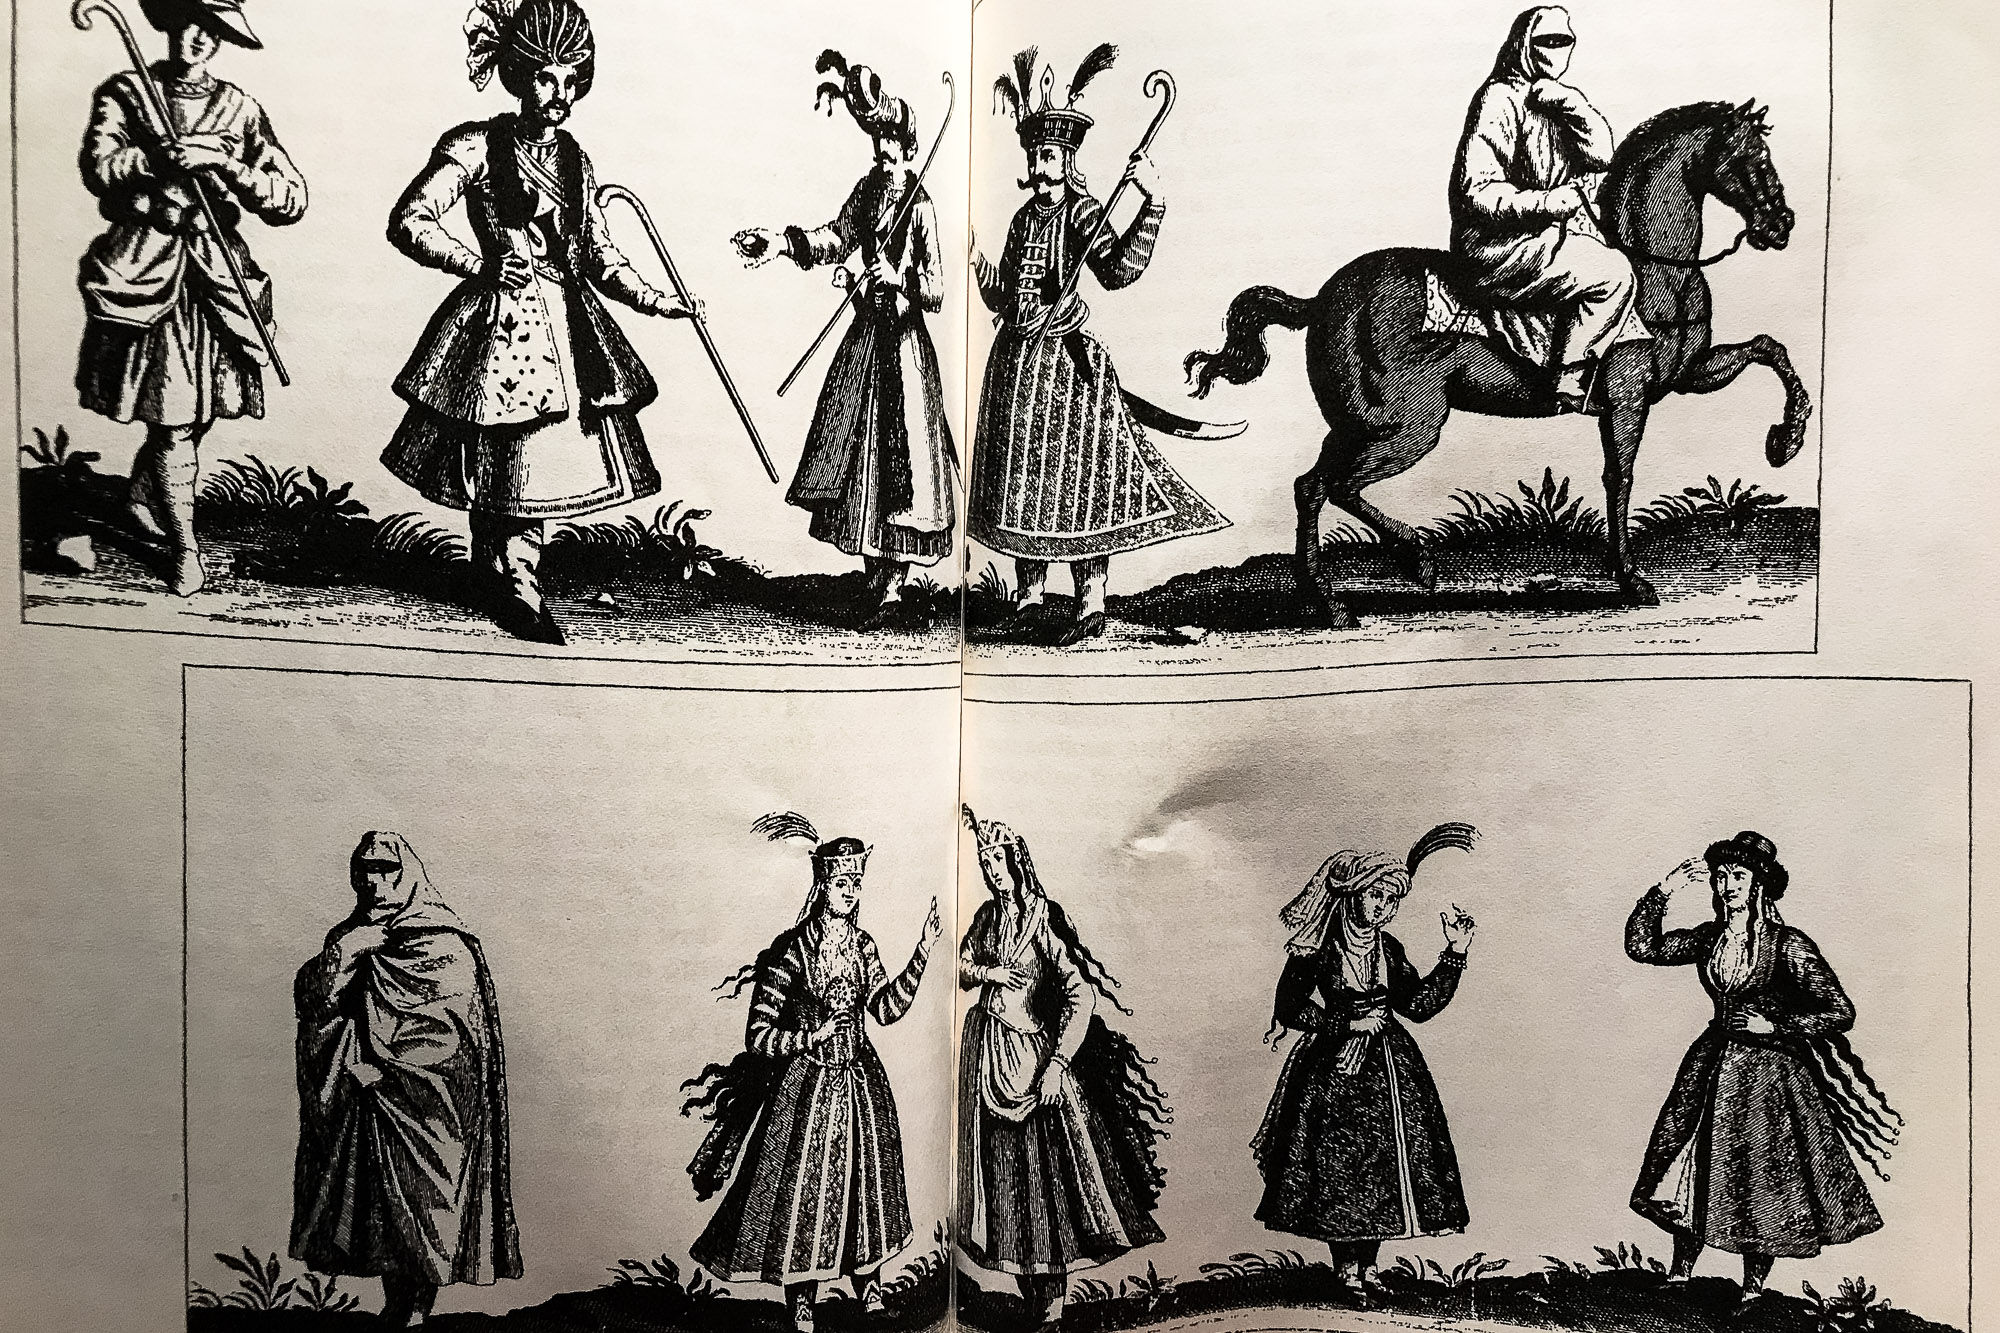 Iranian costumes of the 17th century